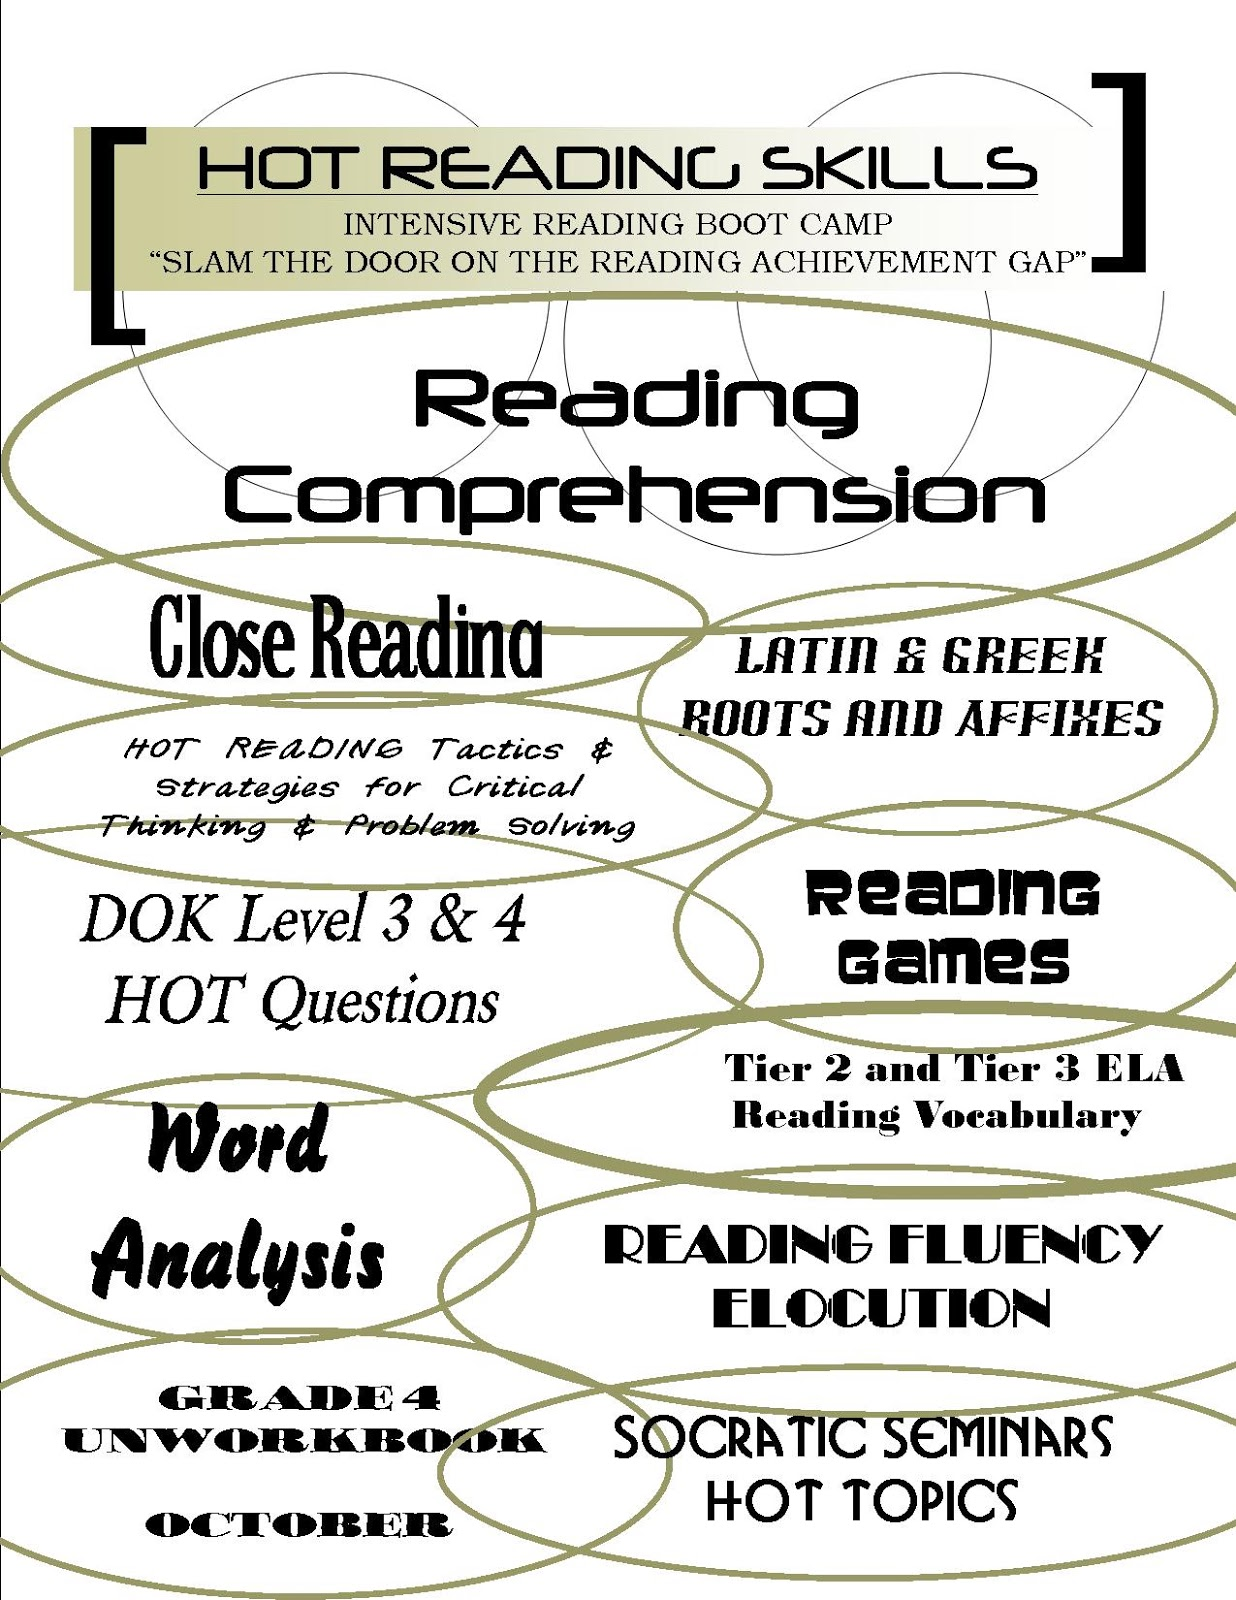 worksheet Nonfiction Reading Comprehension Worksheets reading sage close passages free prepare your students with intensive dok level 3 and 4 two step comprehension questions targeted word study rigorous analysis